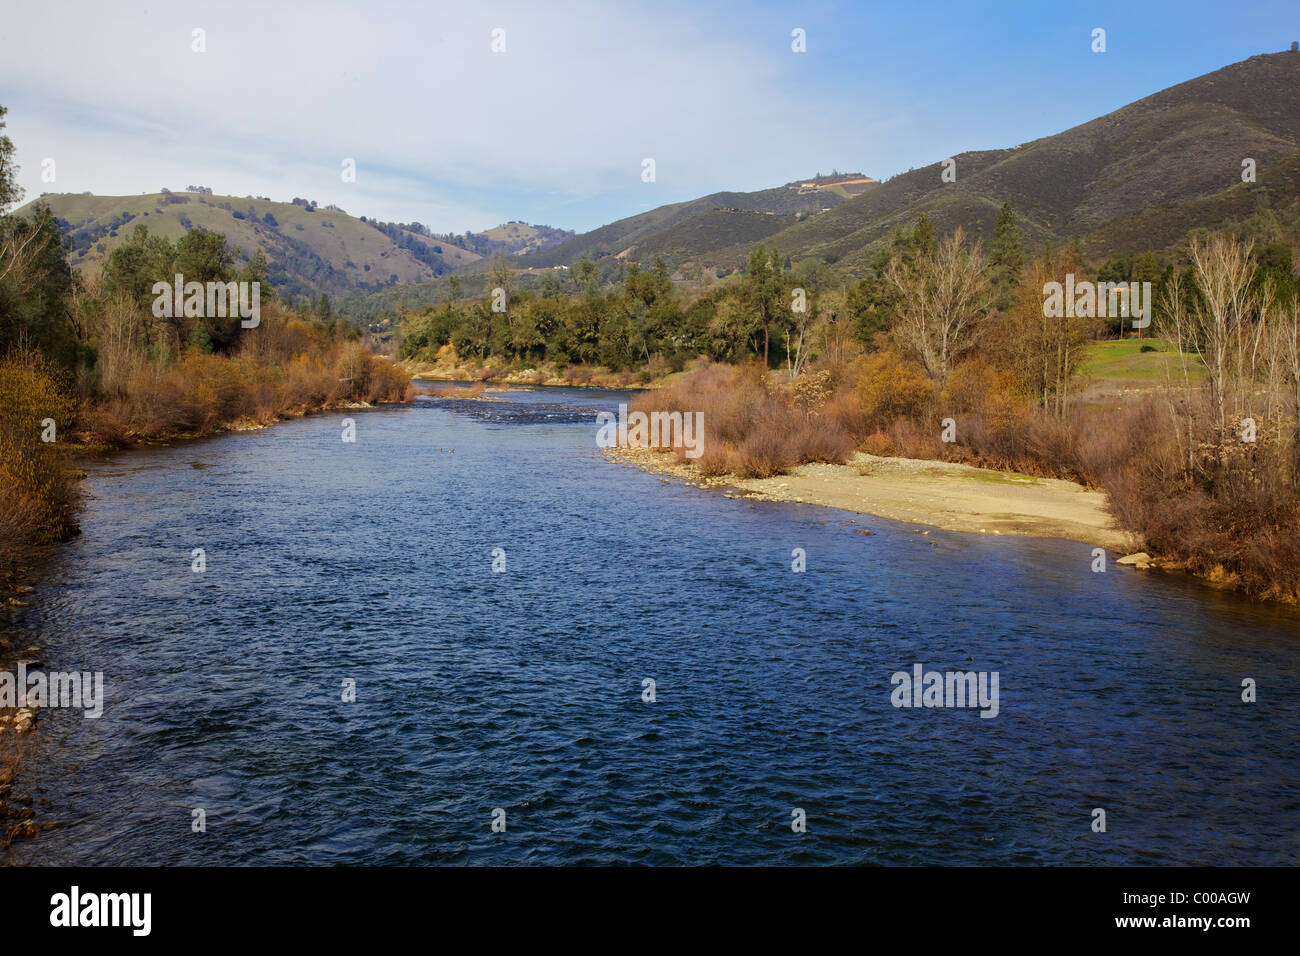 Curving blue water of the coloma river with green hills and blue sky backround - Stock Image